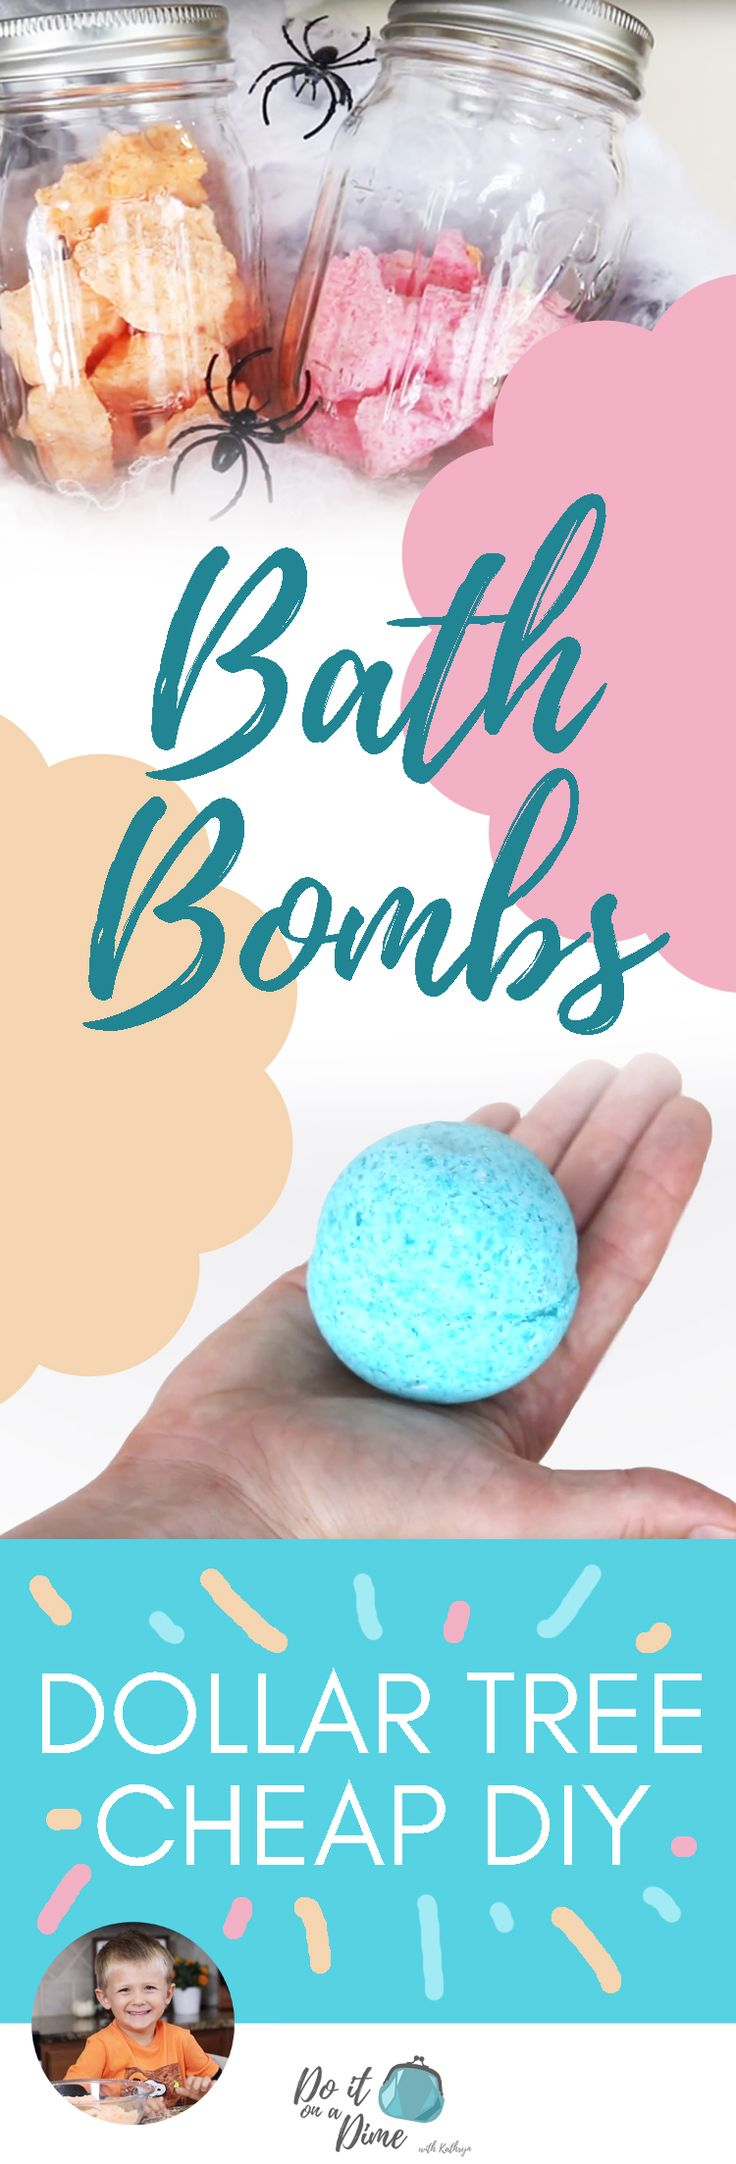 Hey guys! In this episode of Cooking with Carson we are showing you how to make DIY Dollar Tree Bath Bombs! These are similar to the expensive bath bombs you can find at Lush, but Carson makes them…